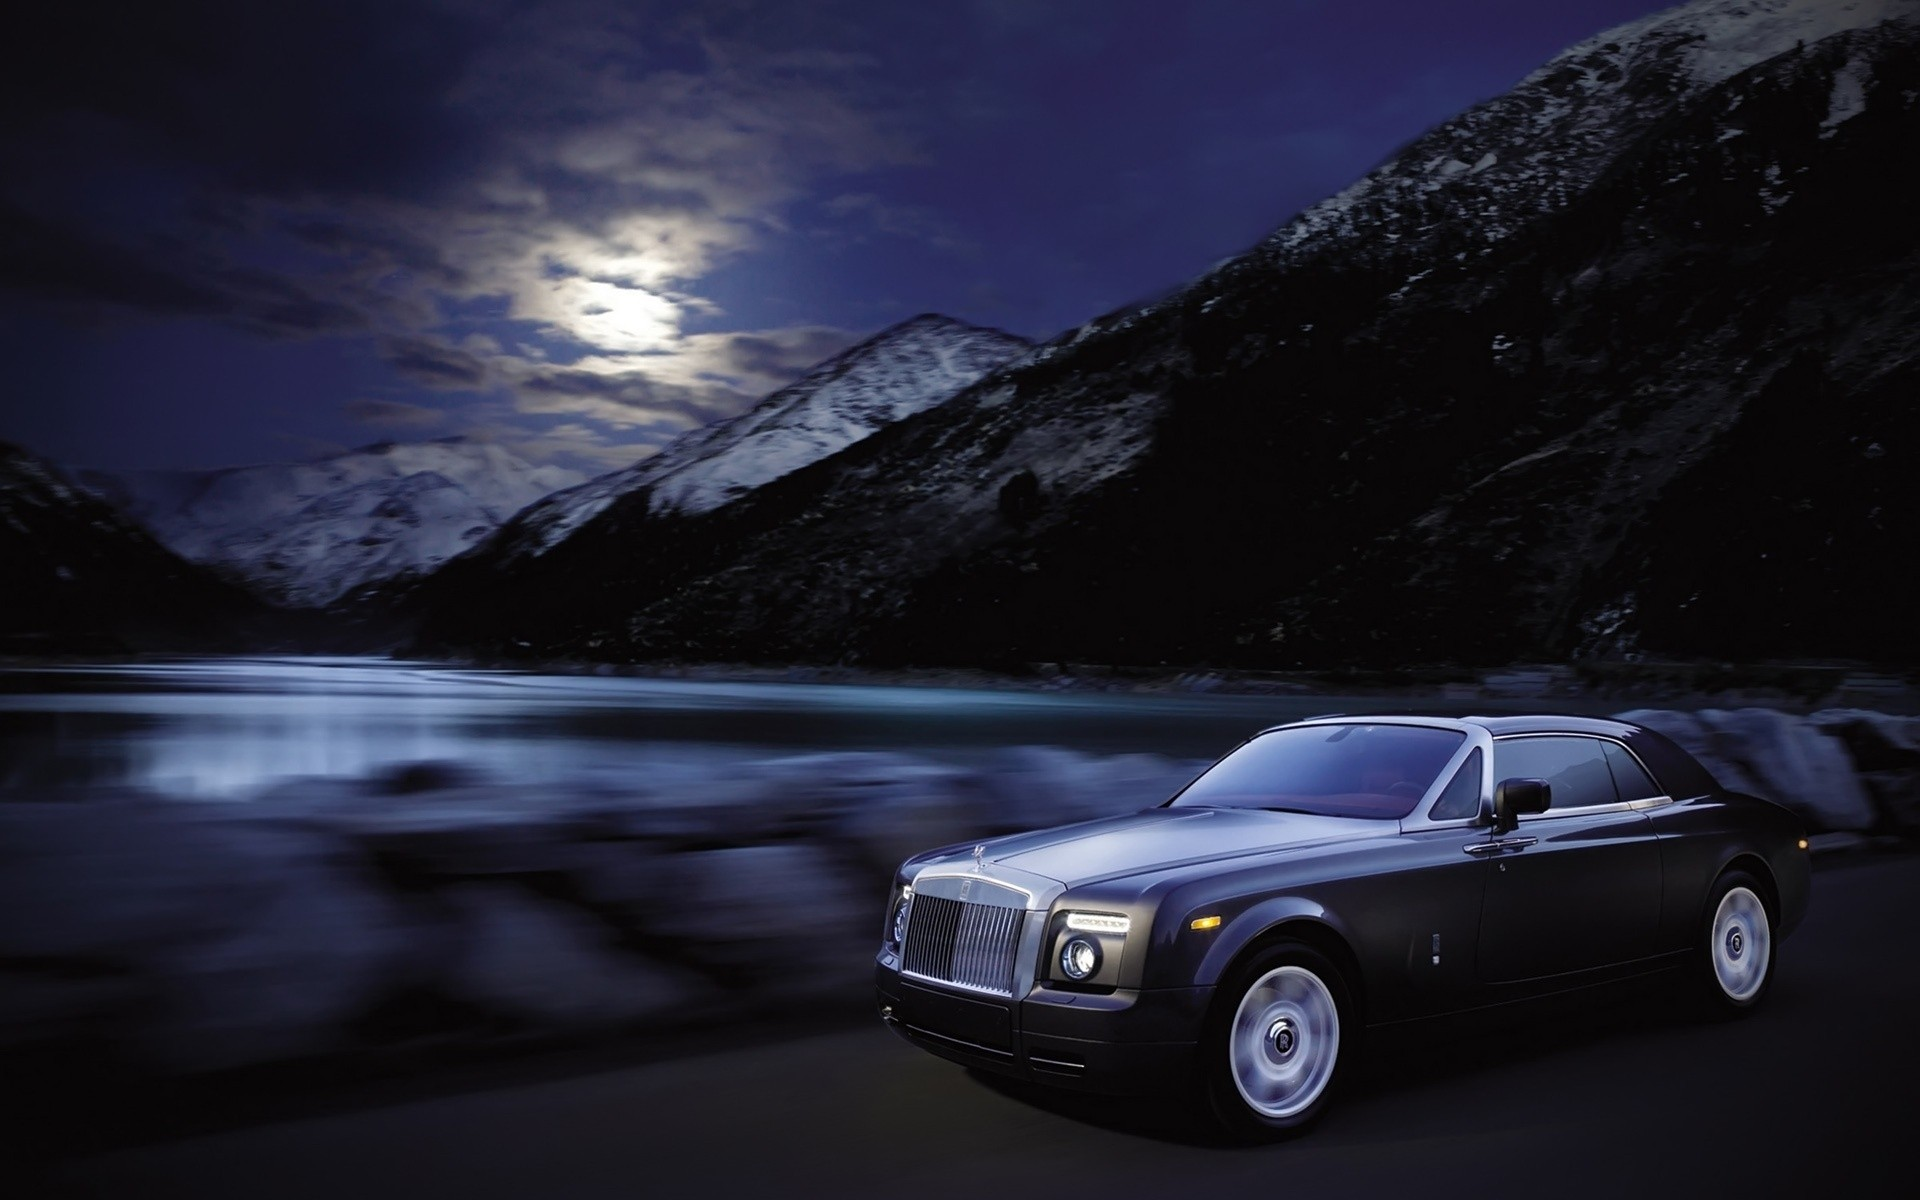 rolls royce car vehicle travel water action hurry